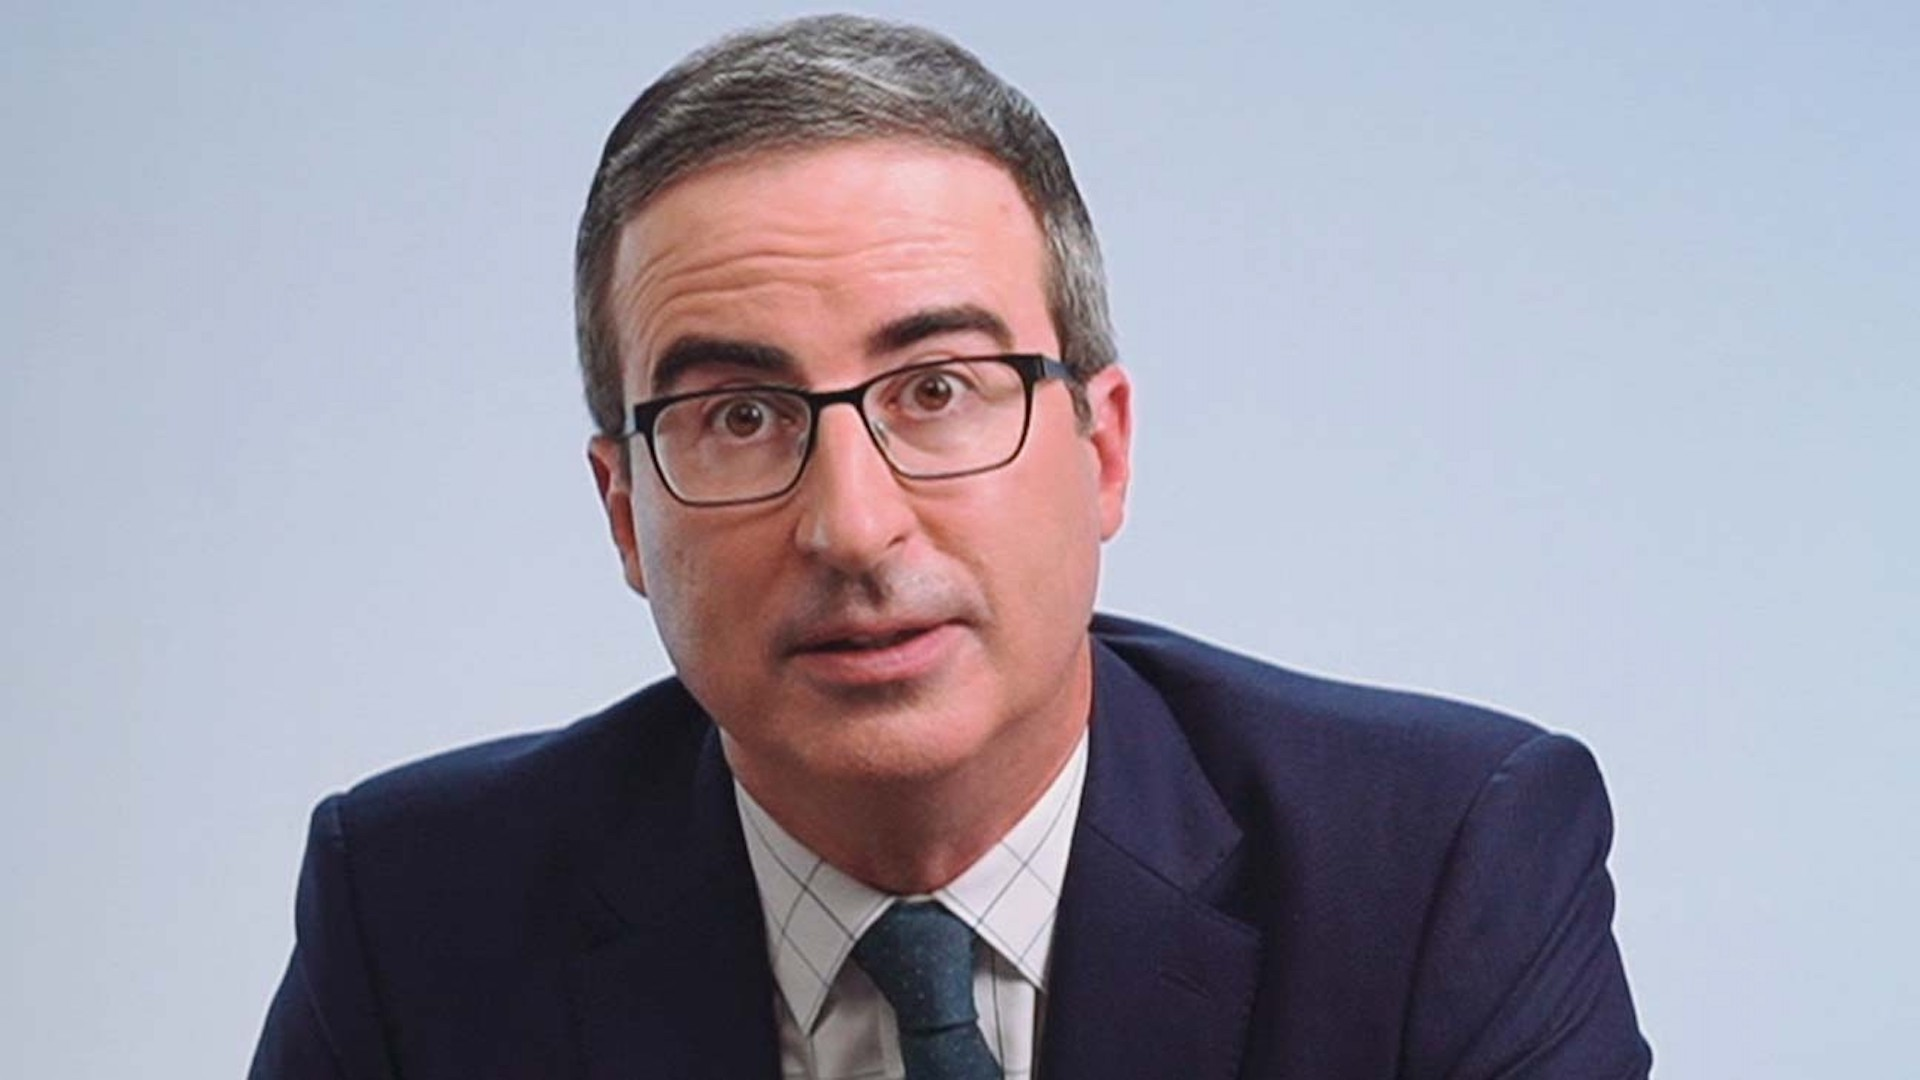 John Oliver Calls Out Ted Cruz For Cancun Vacation Amid Texas Winter Storm Crisis On 'Last Week Tonight' | THR News